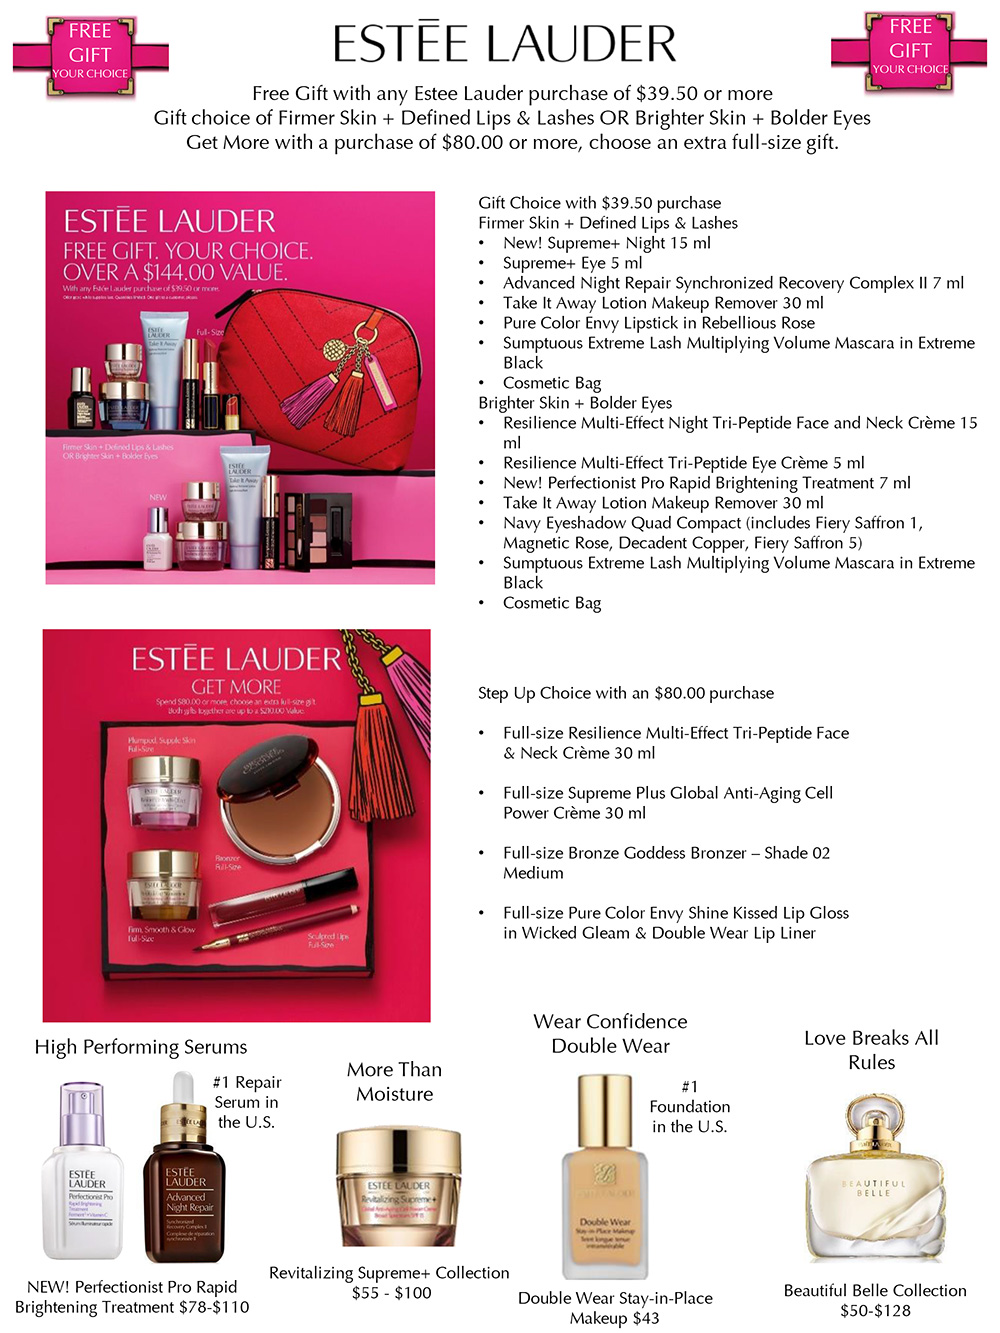 Estée Lauder Gift with Purchase from macy's